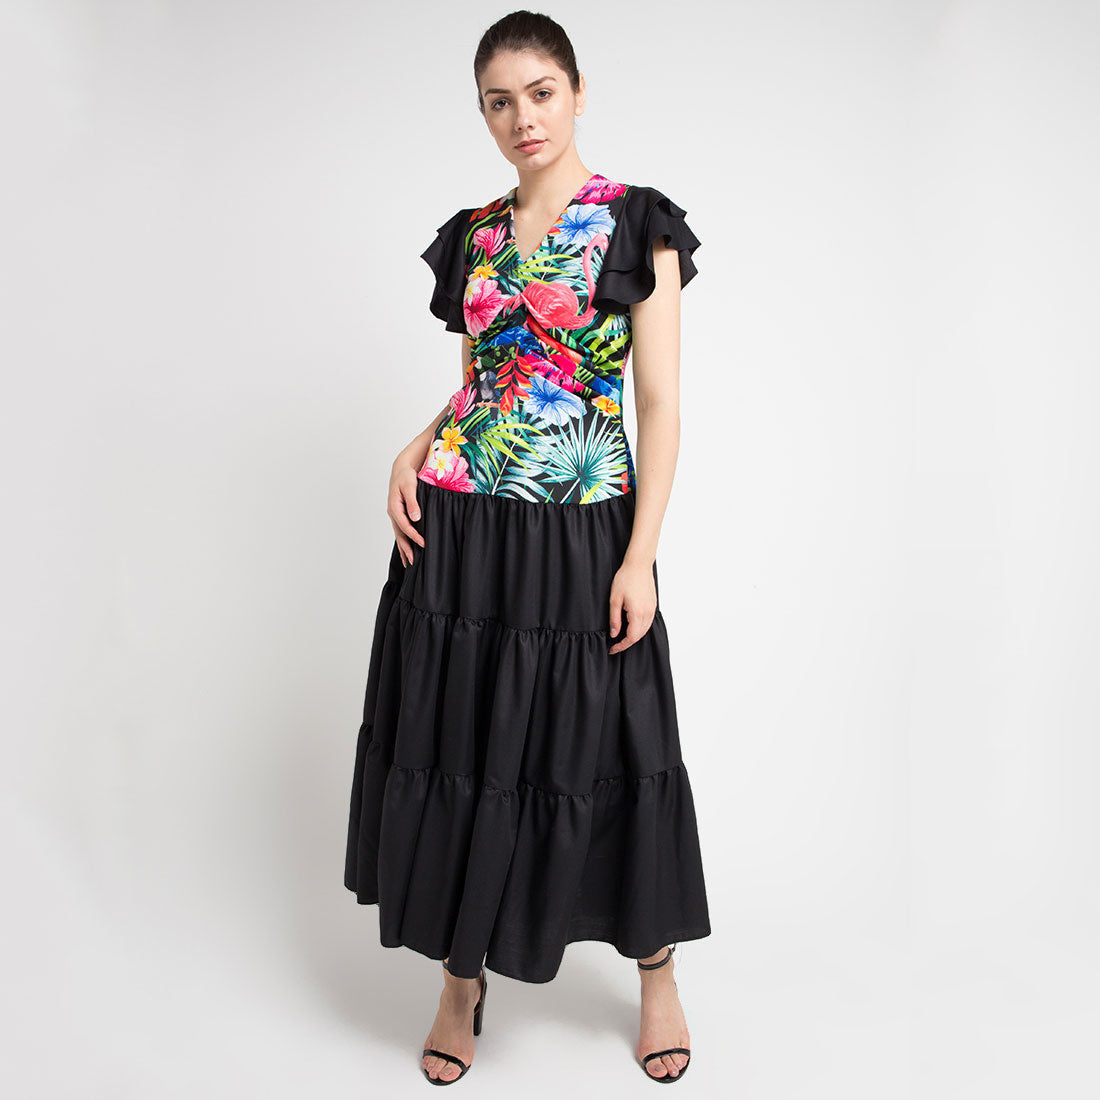 Lydia Long Dress in Black Bliss-2Madison Avenue Indonesia